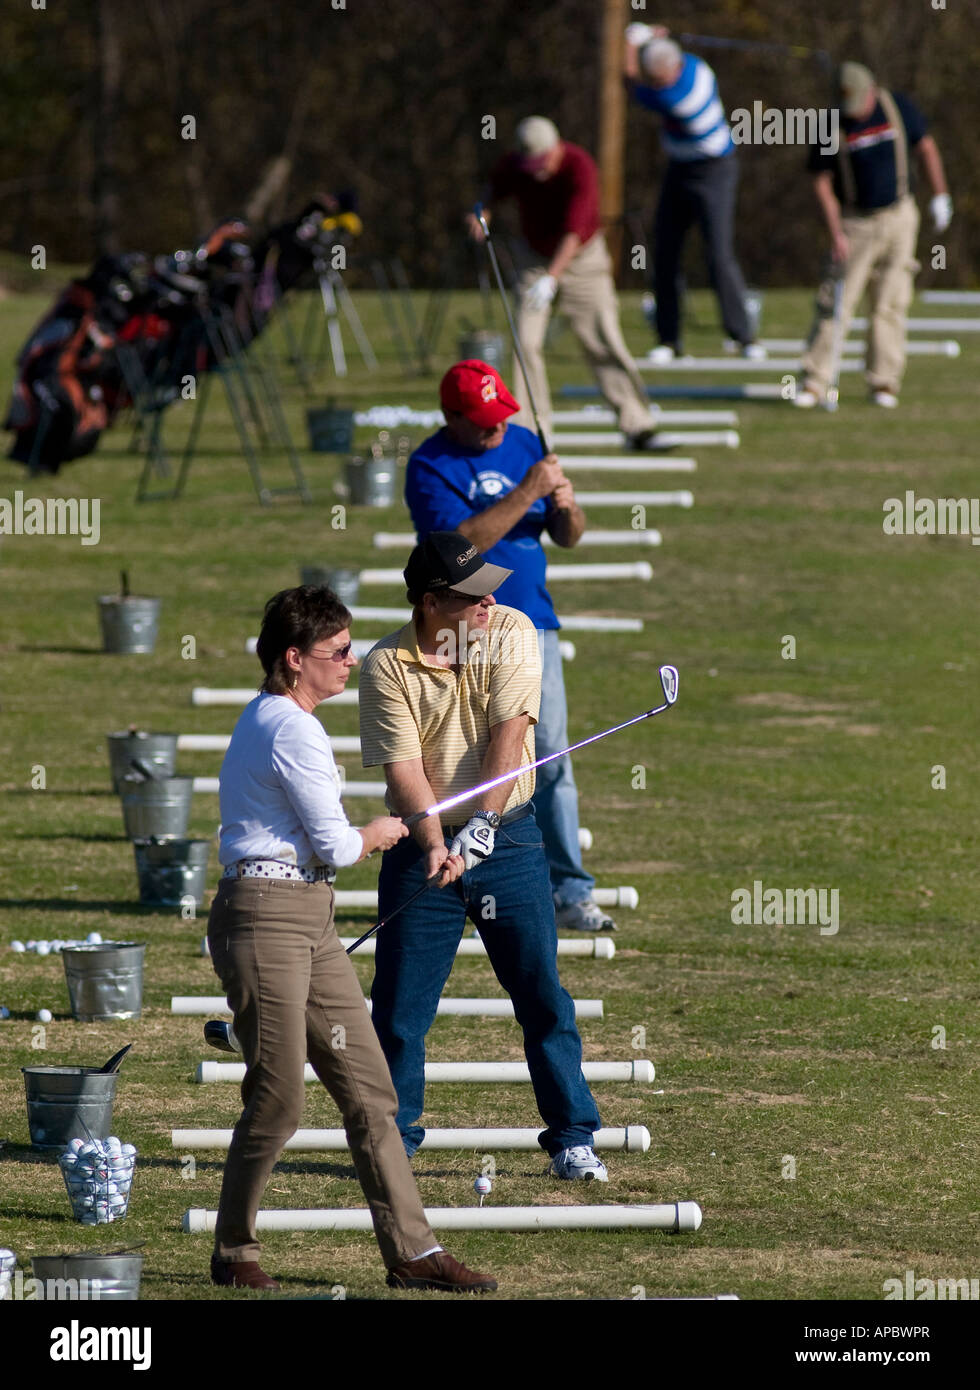 Golfers practice their strokes on the driving range at Tanyard Creek in Bella Vista, Ark. Stock Photo